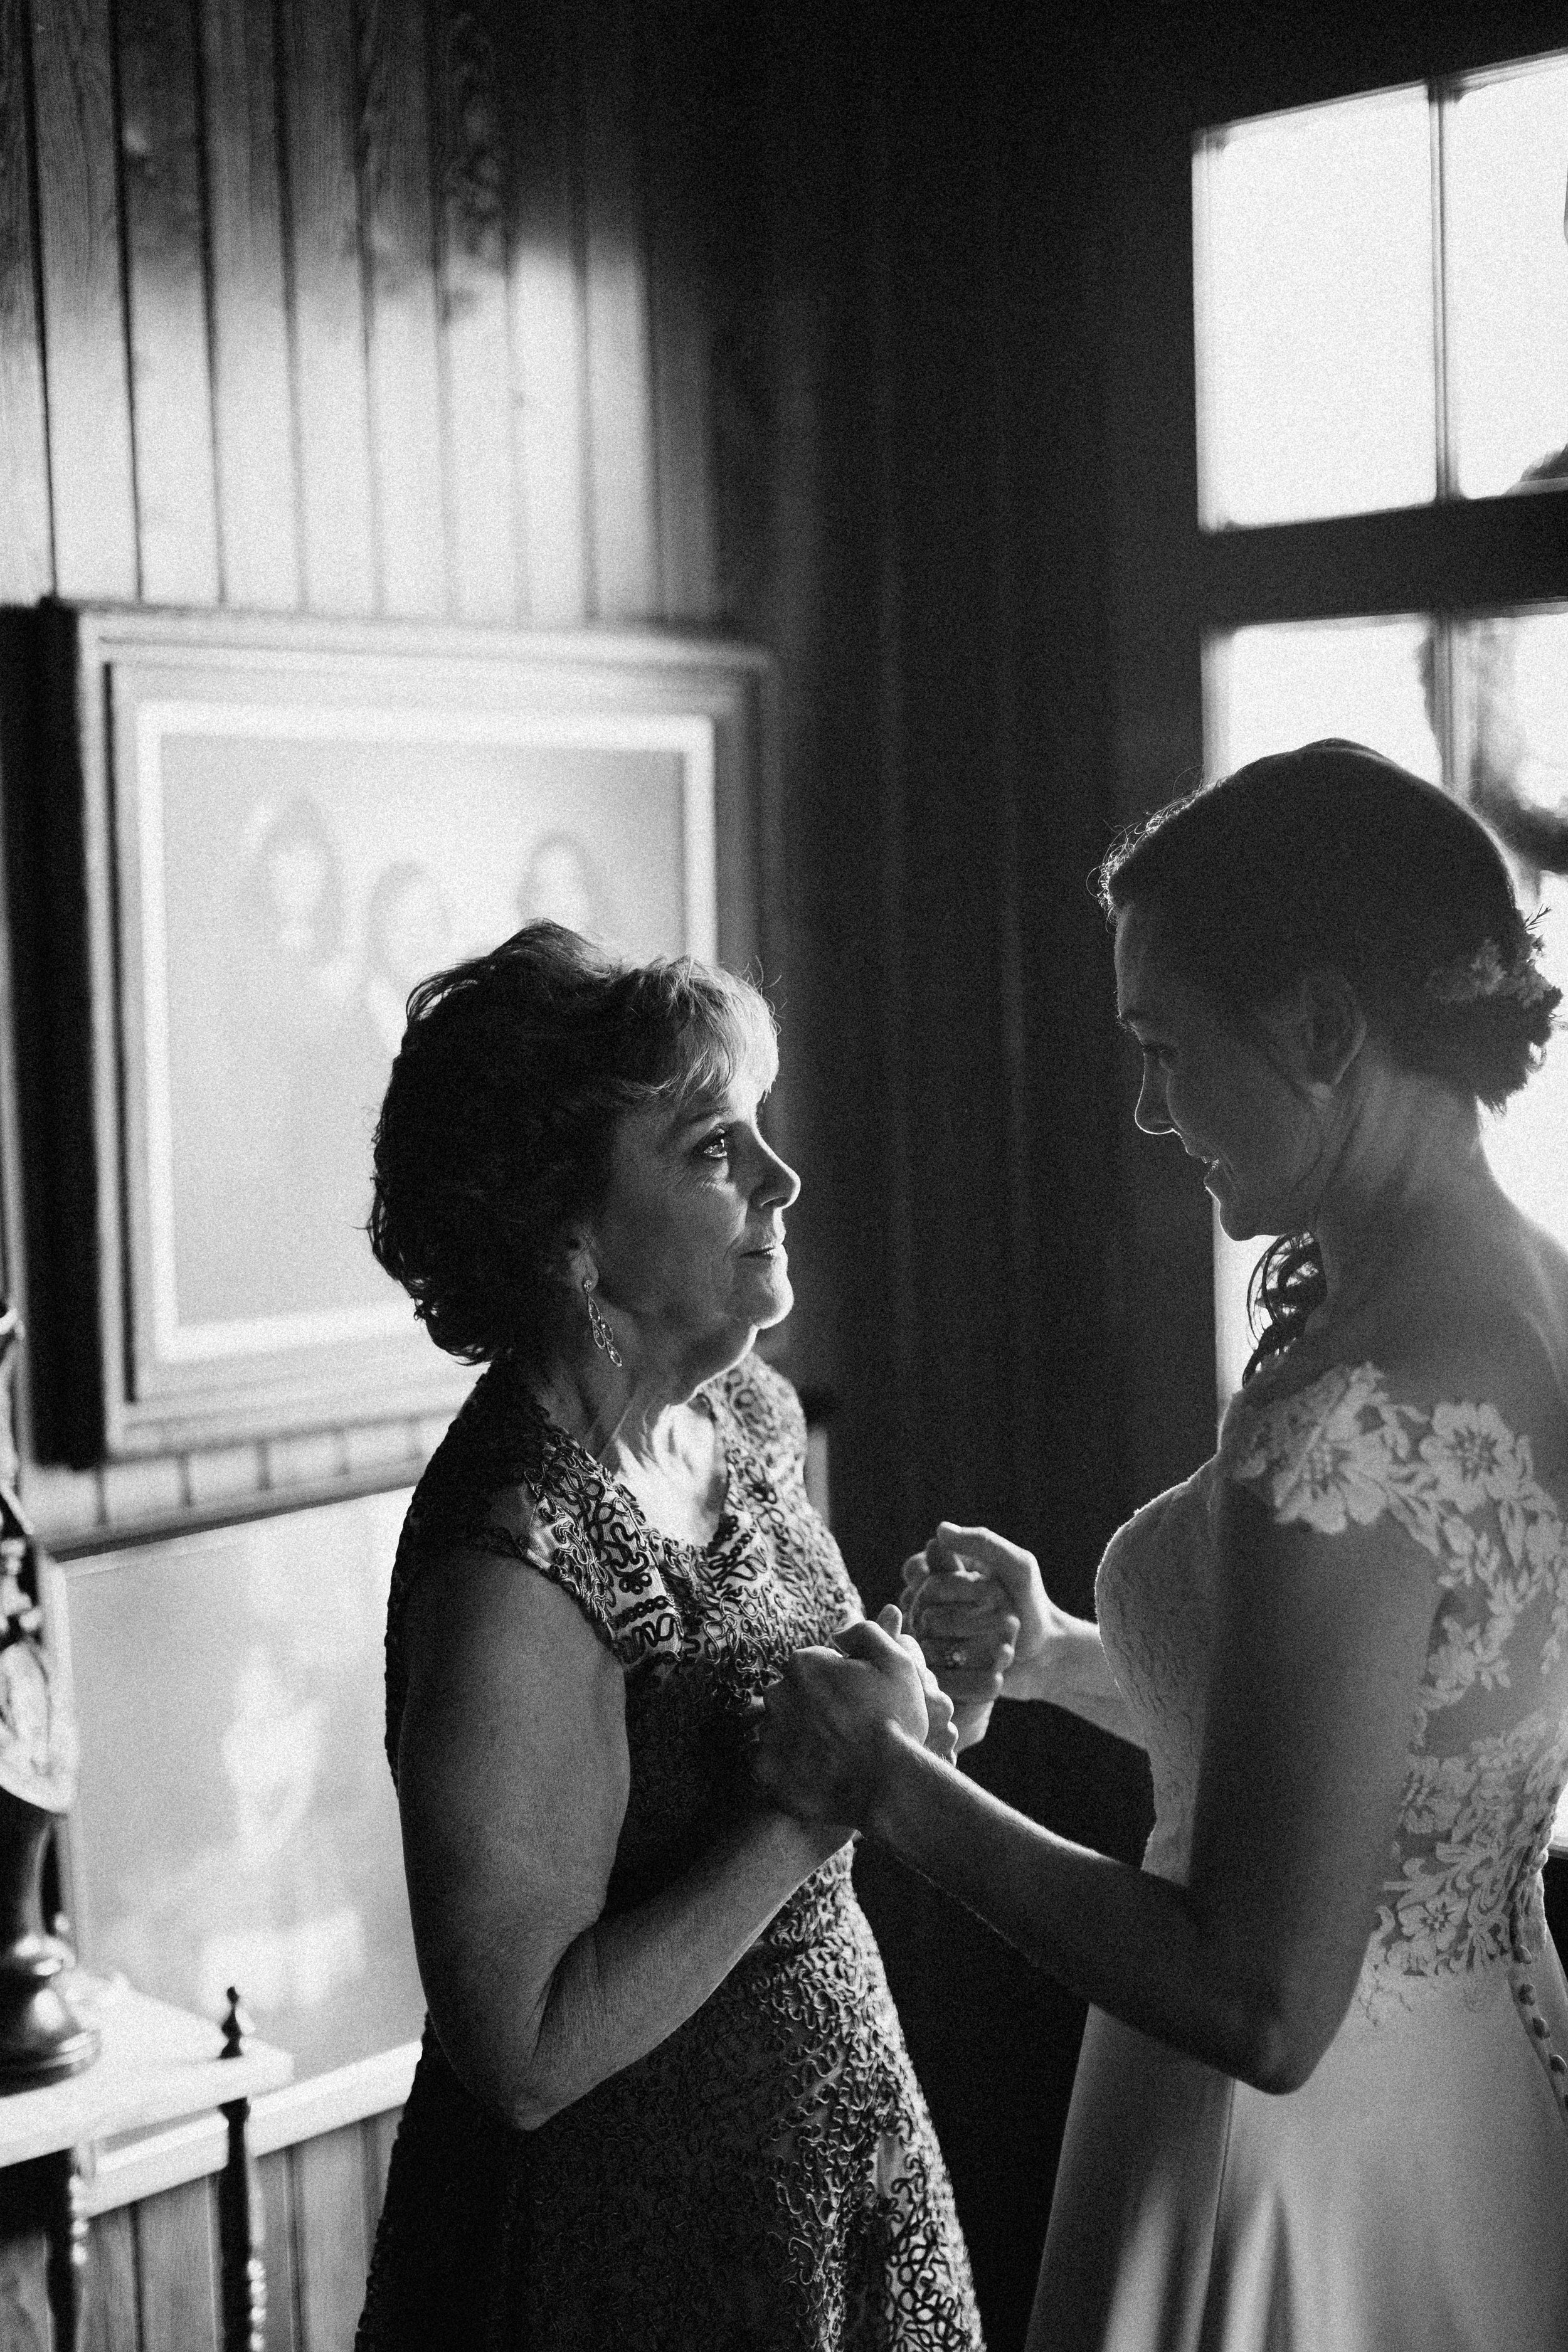 cleveland_georgia_mountain_laurel_farm_natural_classic_timeless_documentary_candid_wedding_emotional_photojournalism_river_west_1203.jpg